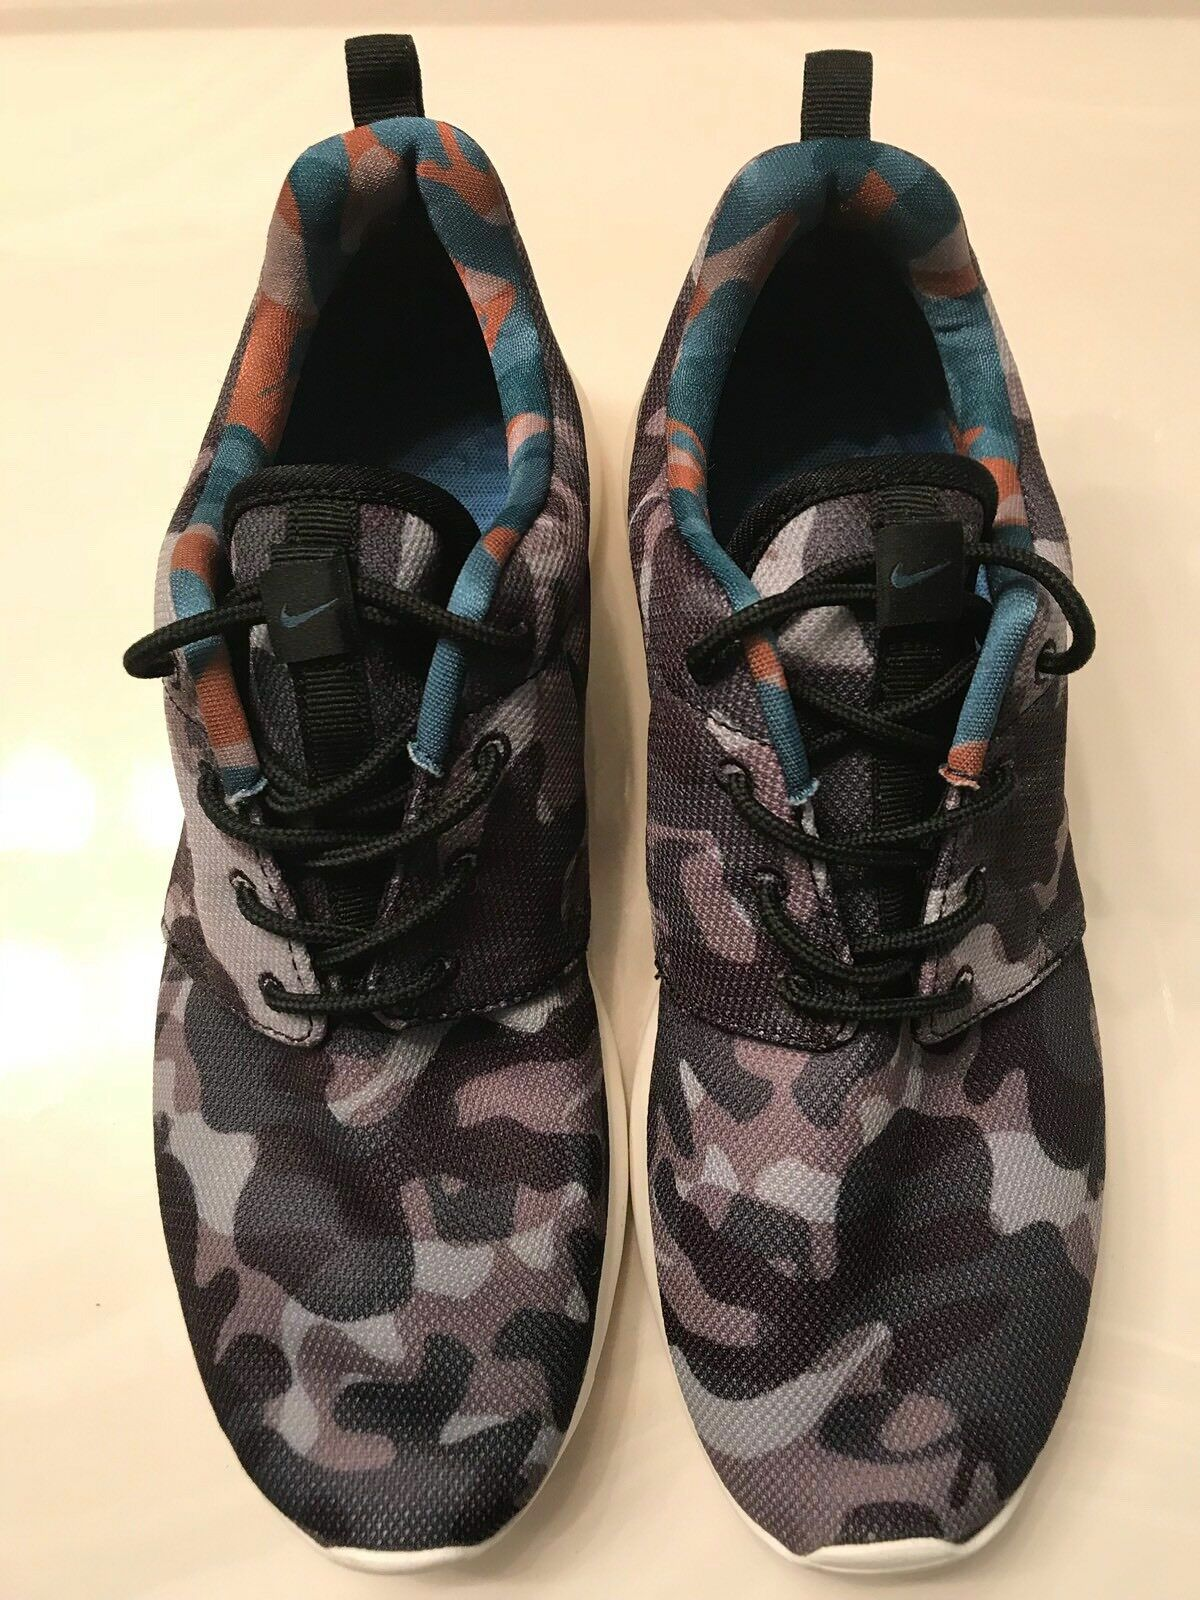 NIKE Gray Camouflage Sneaker Shoes Men's 9.5